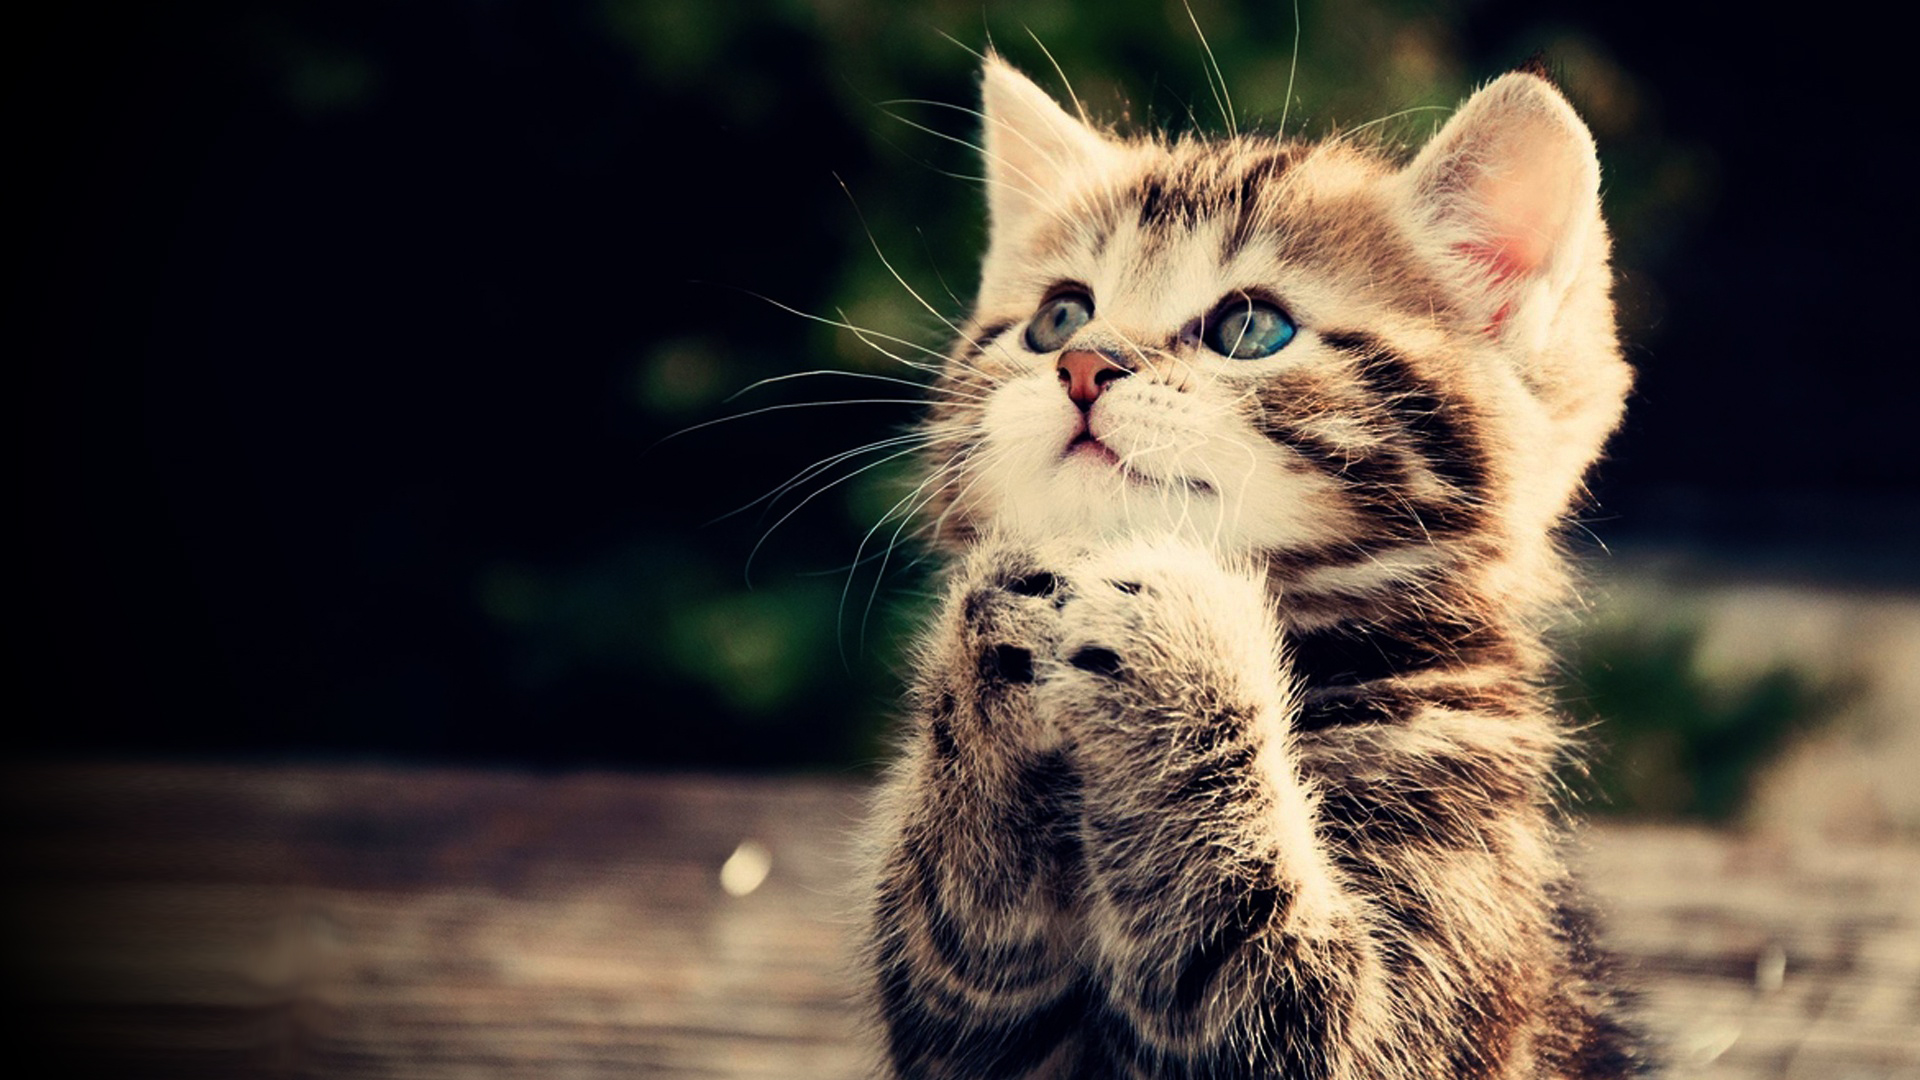 Praying kitten Full HD wallpaper cute animal picture 1080p download 1920x1080